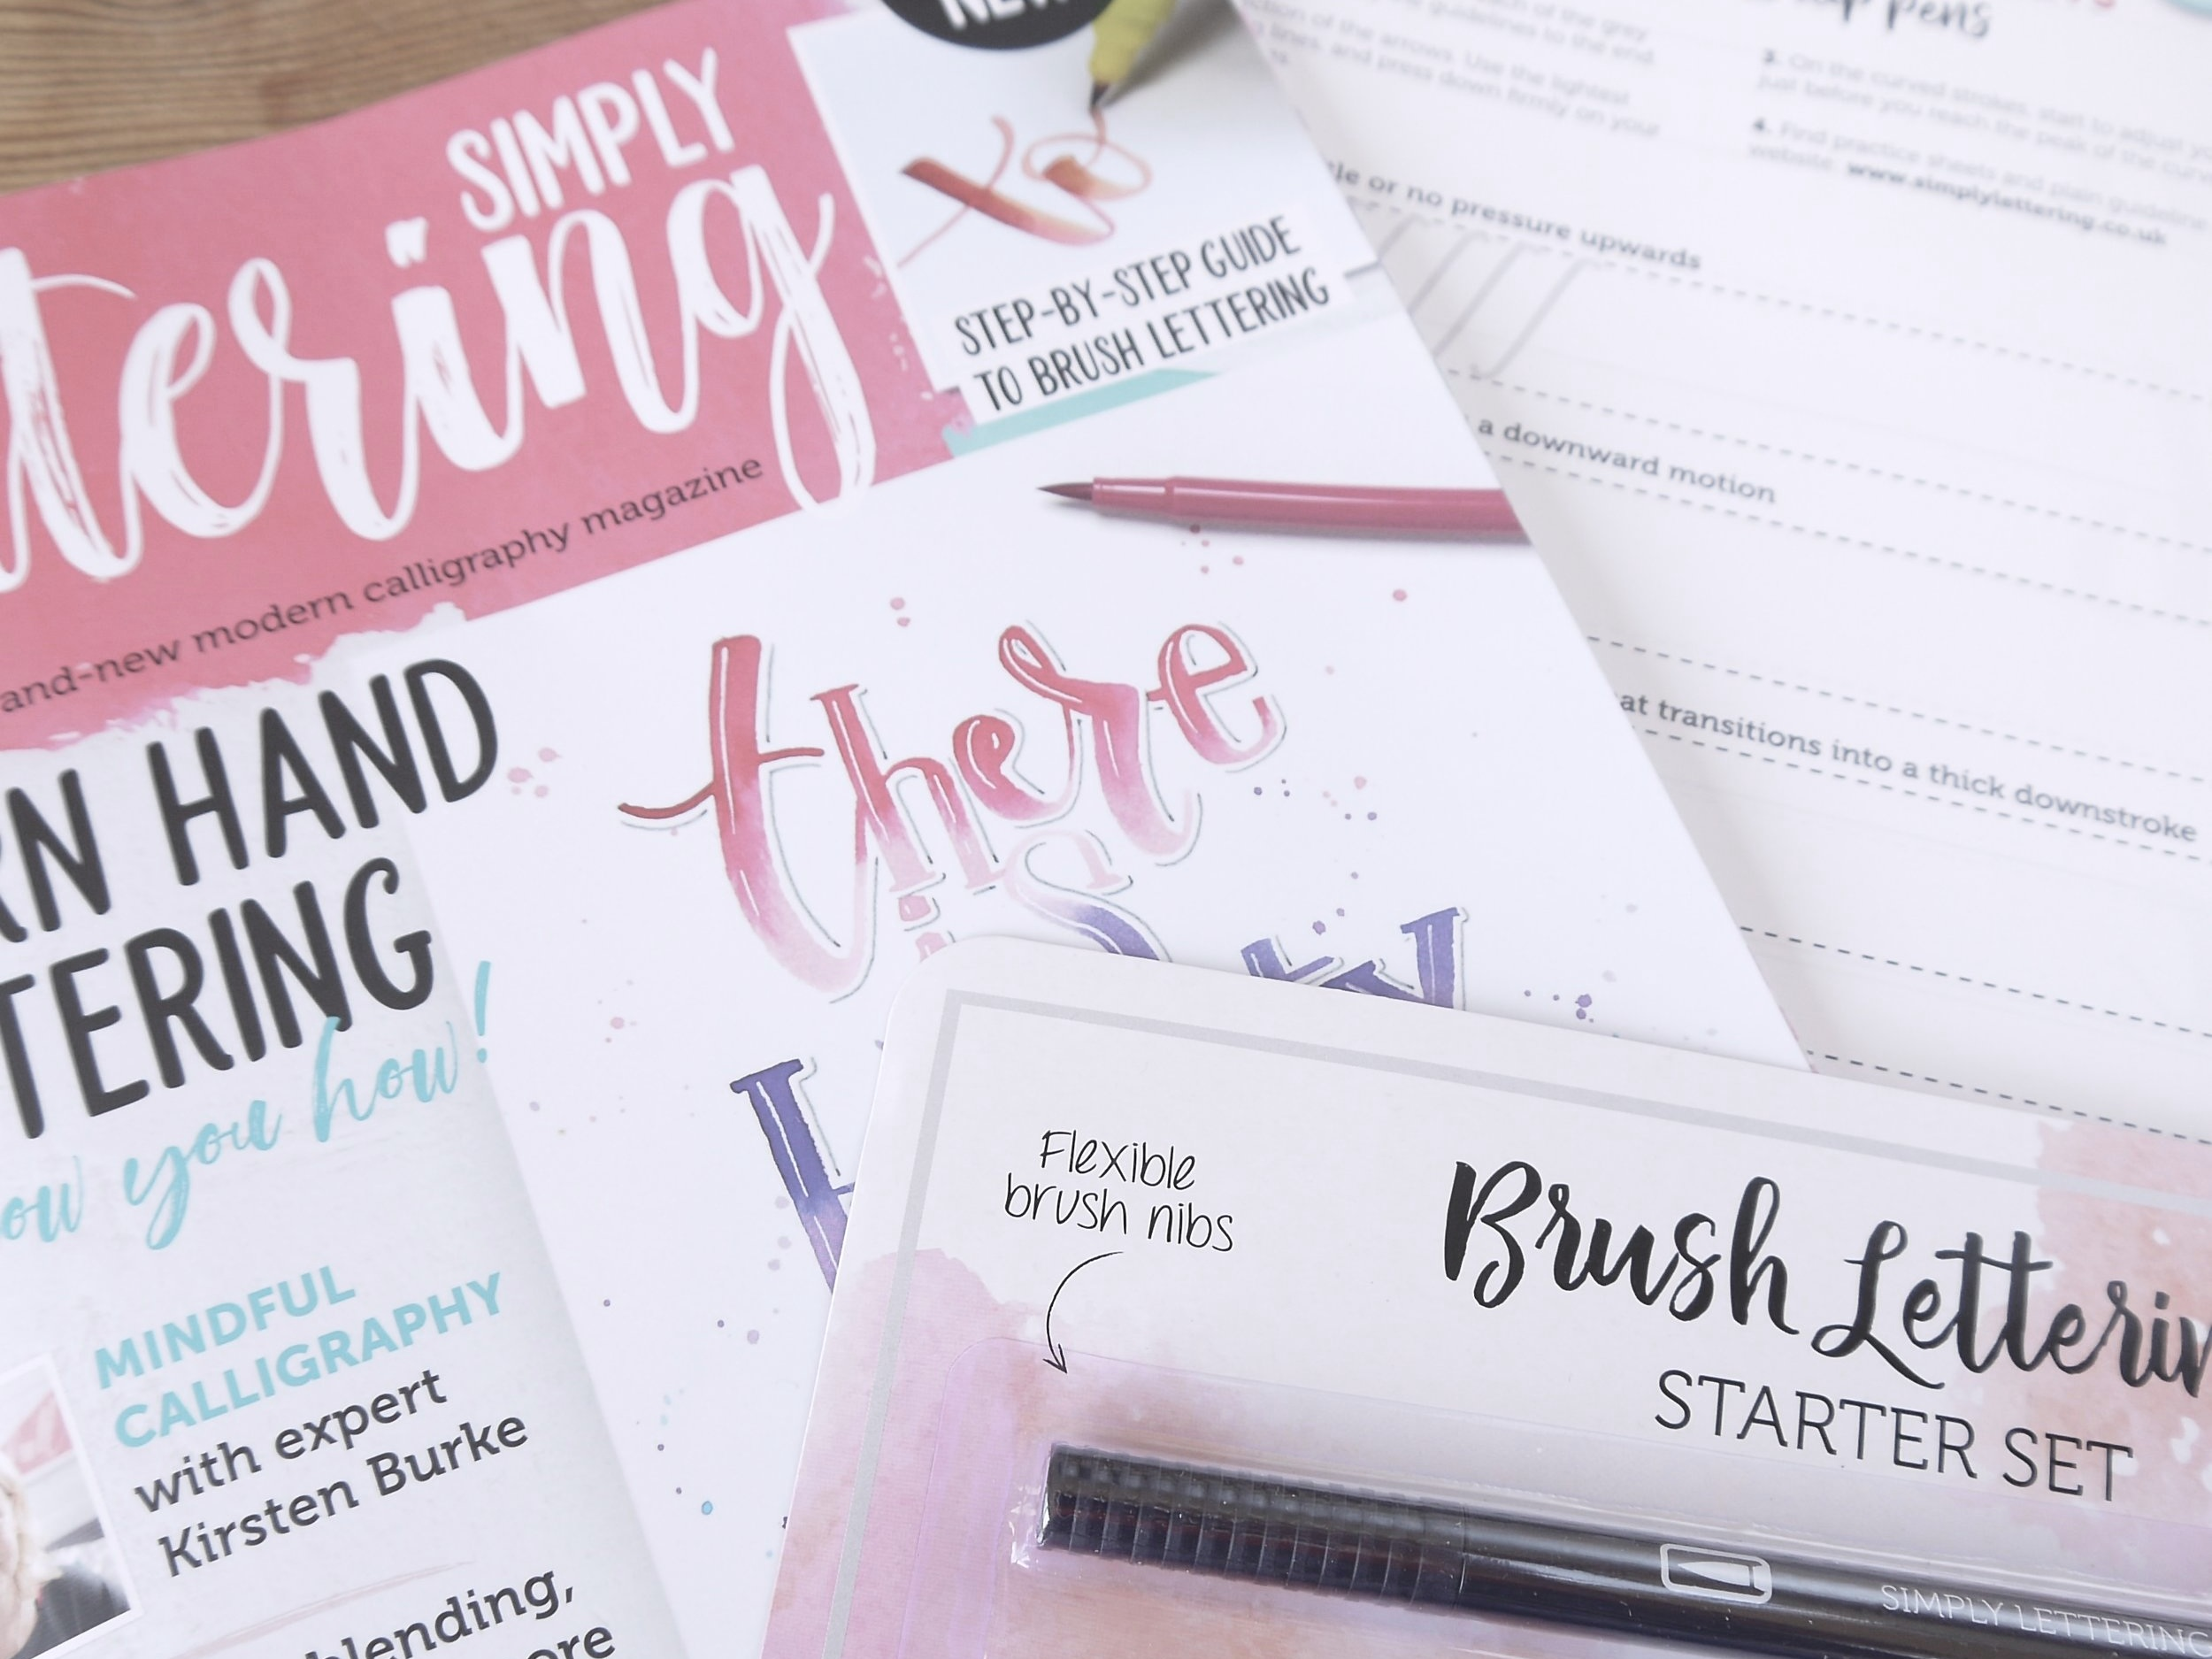 Win a copy of Simply Lettering magazine by entering this competition